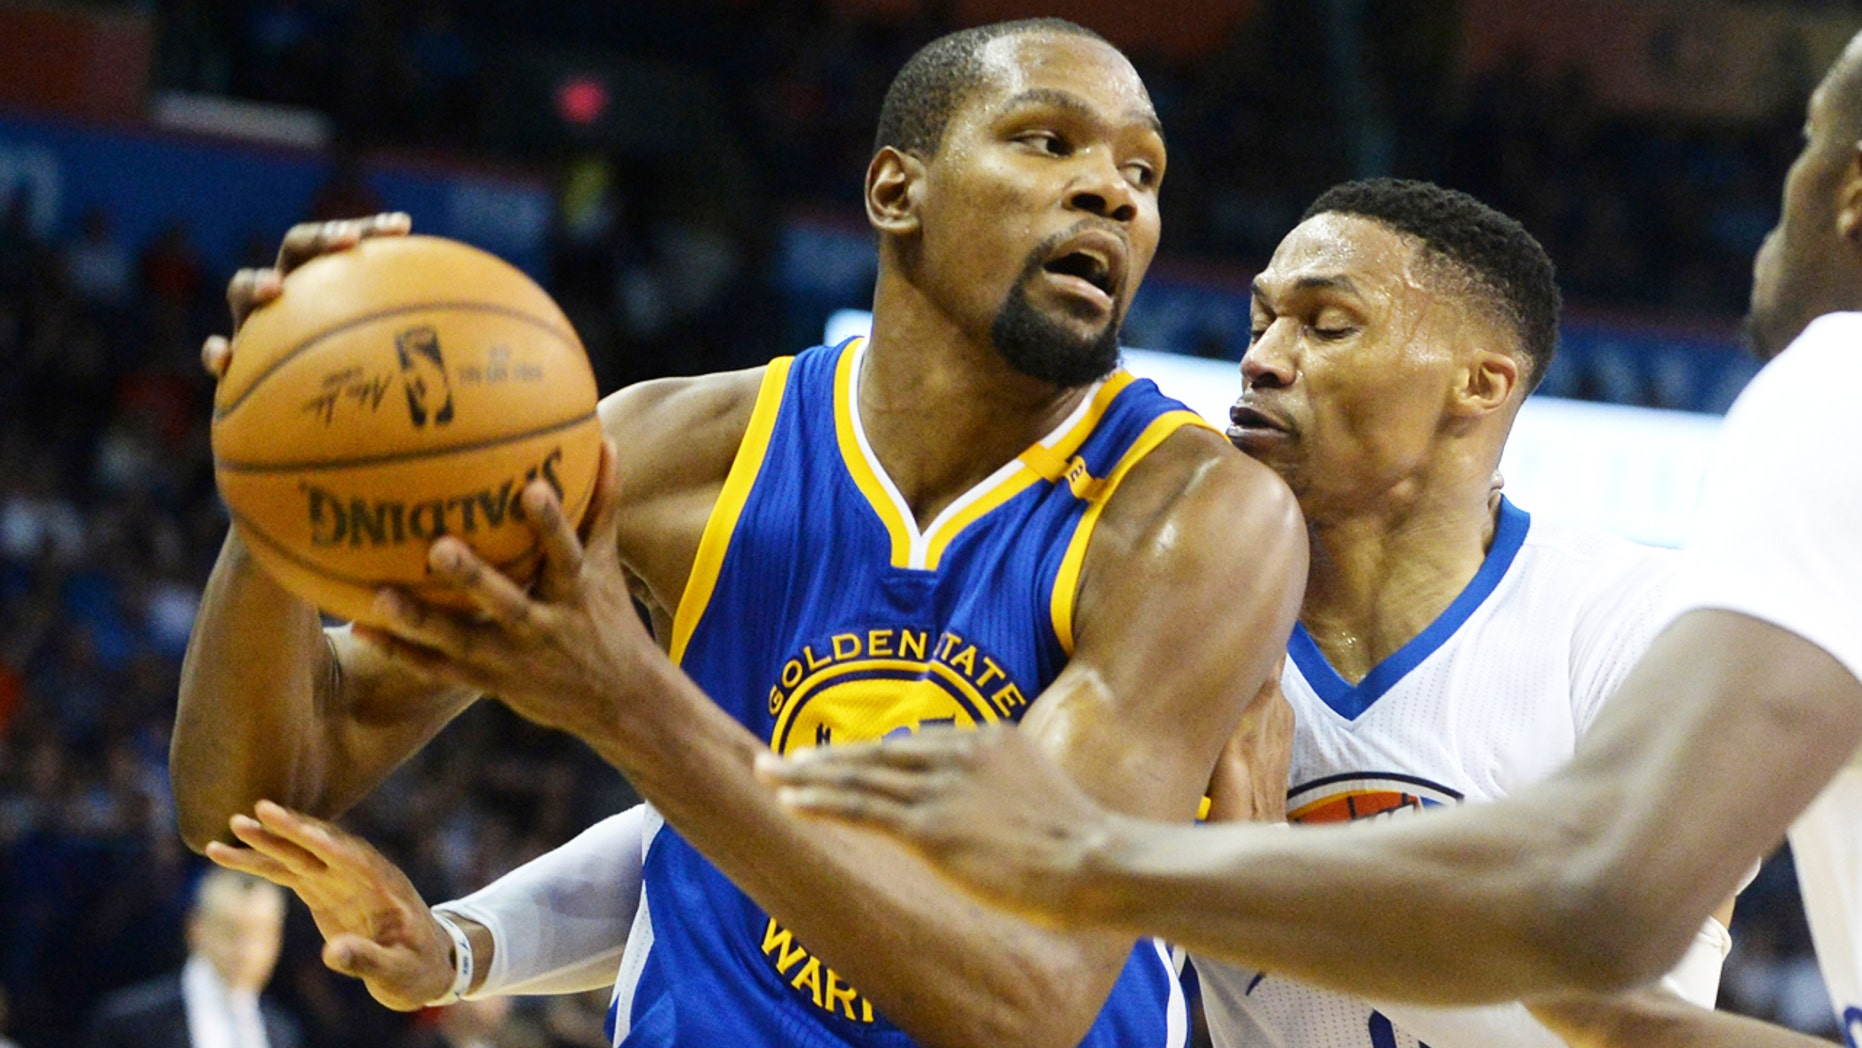 Basketball player Kevin Durant, formally with The Oklahoma City Thunder, now plays for the Golden State Warriors.